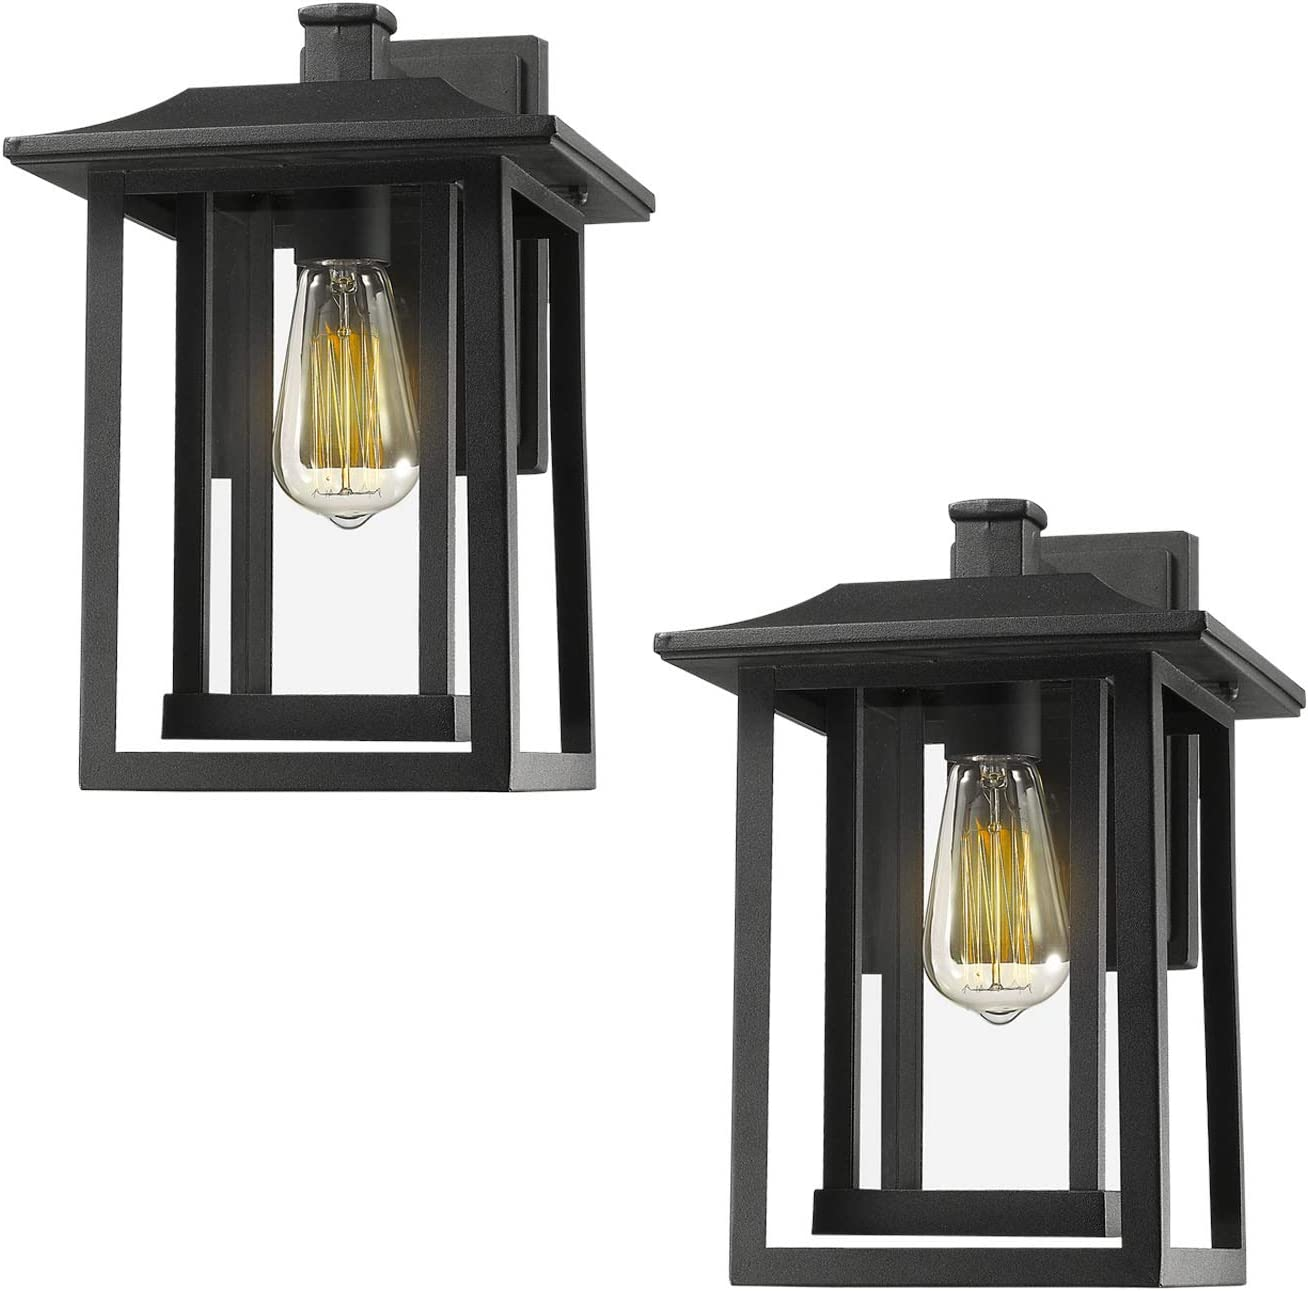 Amazon Com Beionxii Outdoor Wall Lights Set Of 2 Exterior Light Fixtures Wall Mount Sconces Sand Textured Black With Clear Glass 9 W X 13 5 H A197w 2pk Home Improvement